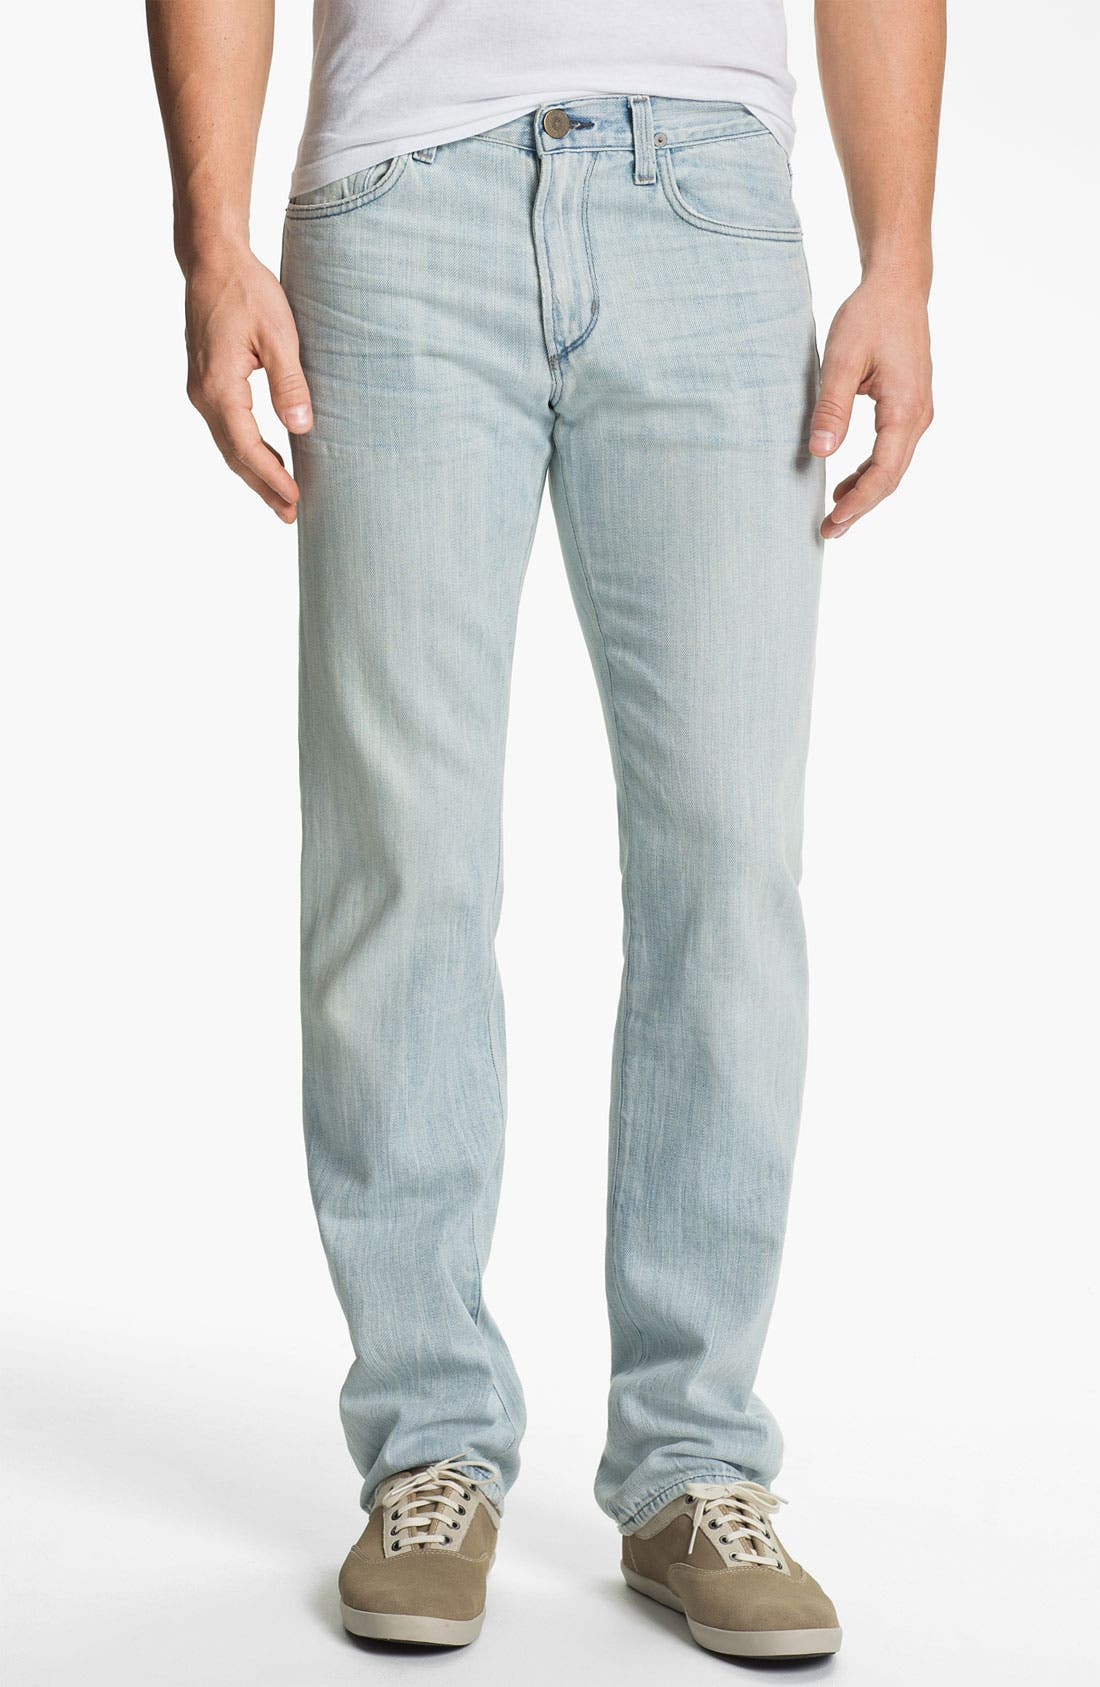 Alternate Image 1 Selected - Citizens of Humanity 'Sid' Straight Leg Jeans (Culver)